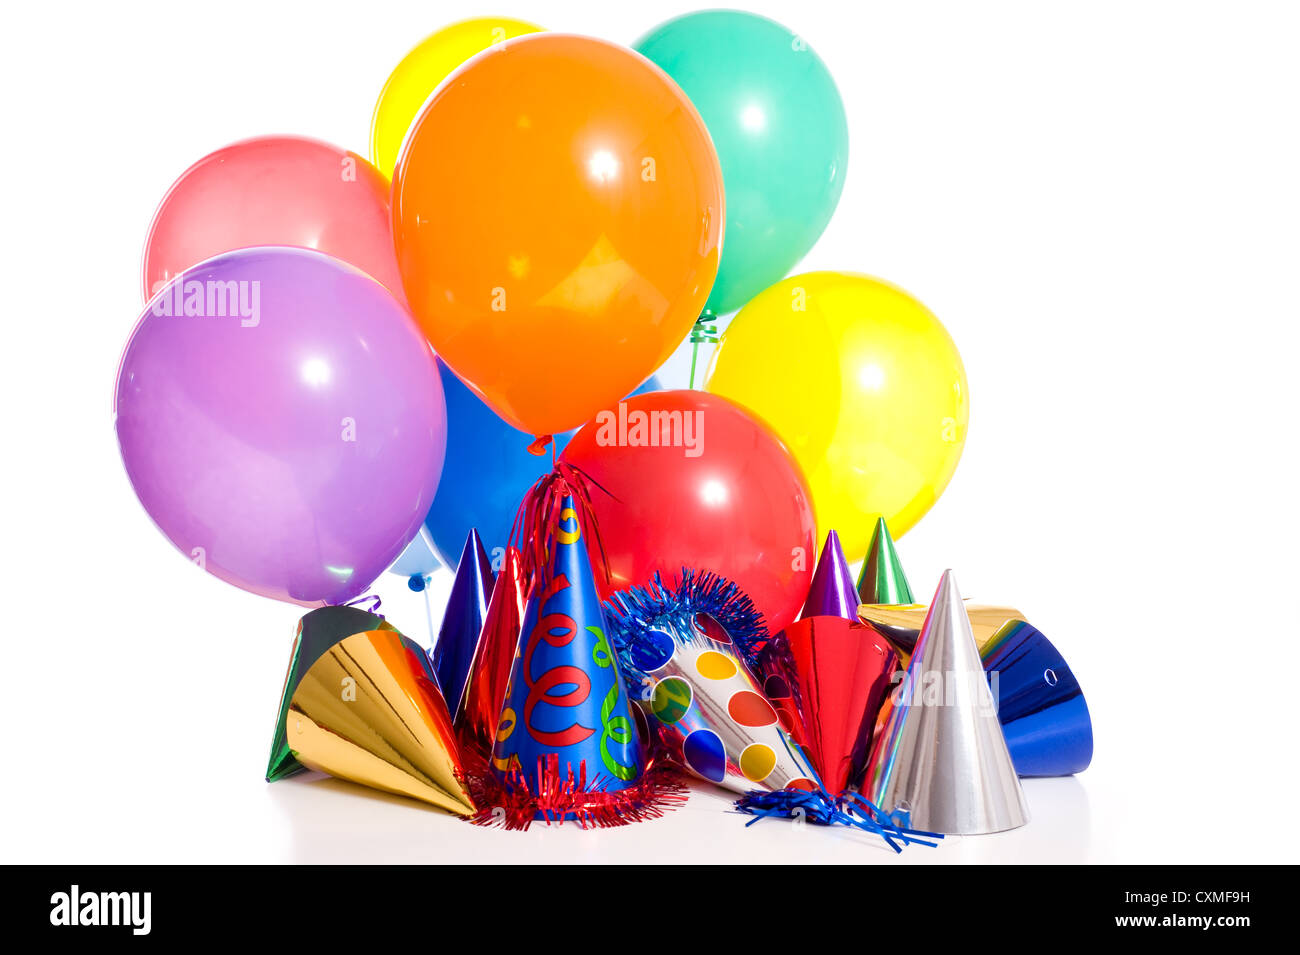 birthday party background with party hats floating balloons and